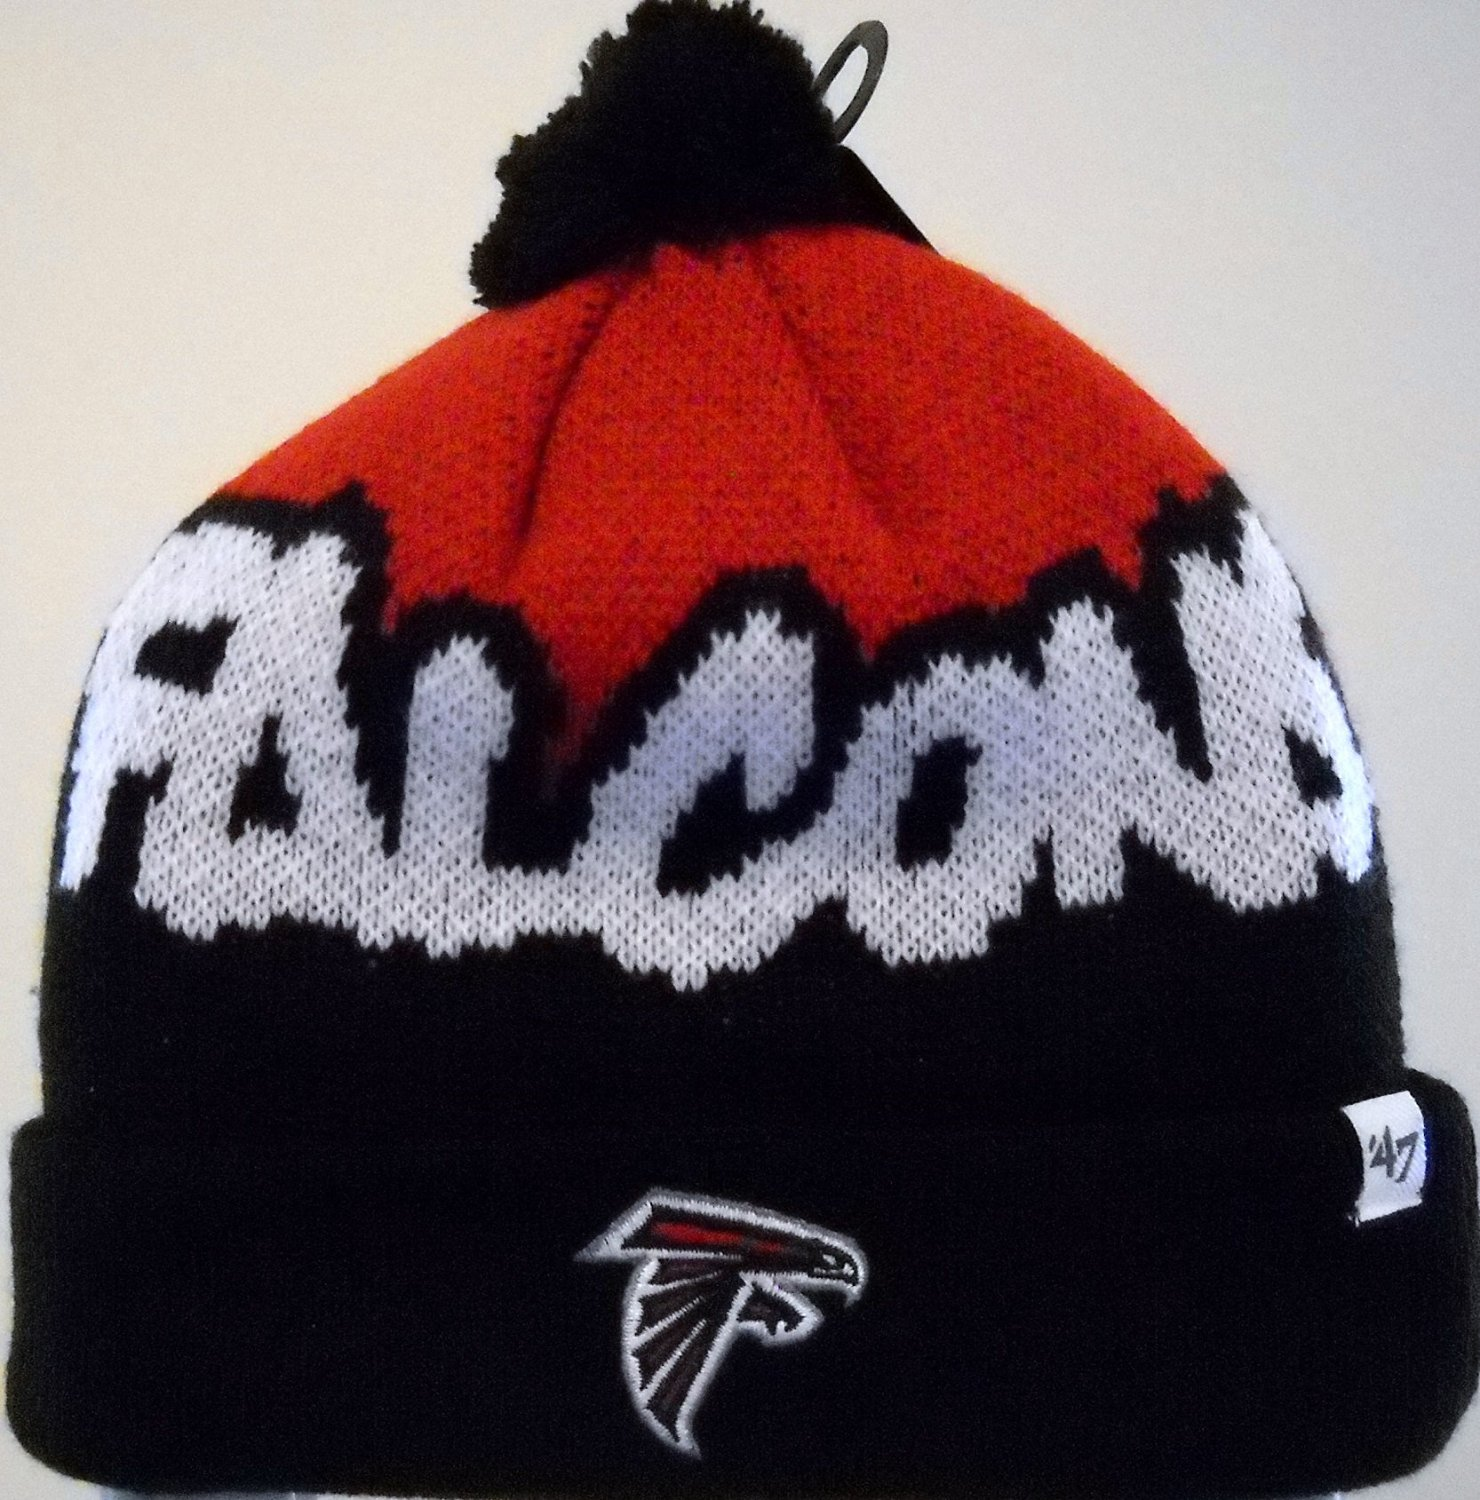 af620e031be Get Quotations · Atlanta Falcons Kids Youth Knit Cap Hat Toboggan with  Embroidered Team Logo on Cuff and Black